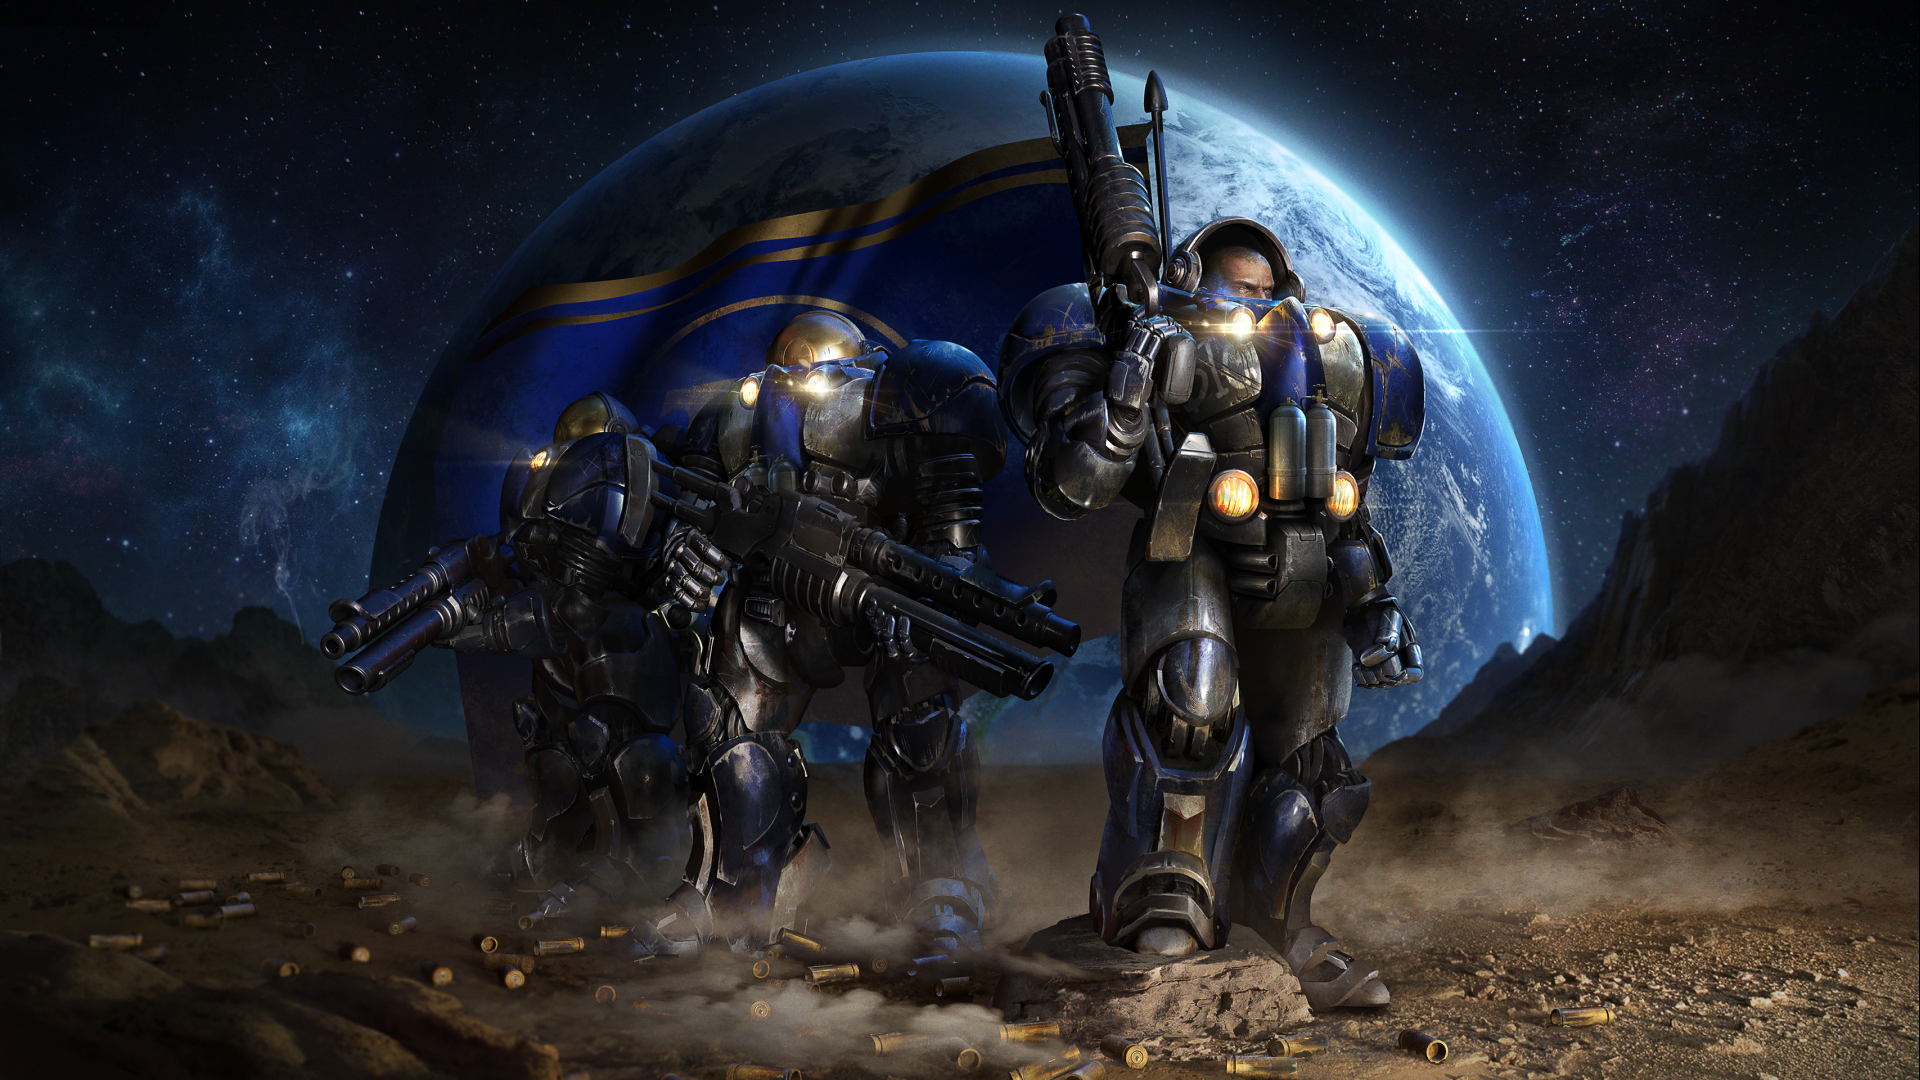 Your New Wallpapers Are Ready Games Starcraft Starcraft2 SC2 Gamingnews Blizzard